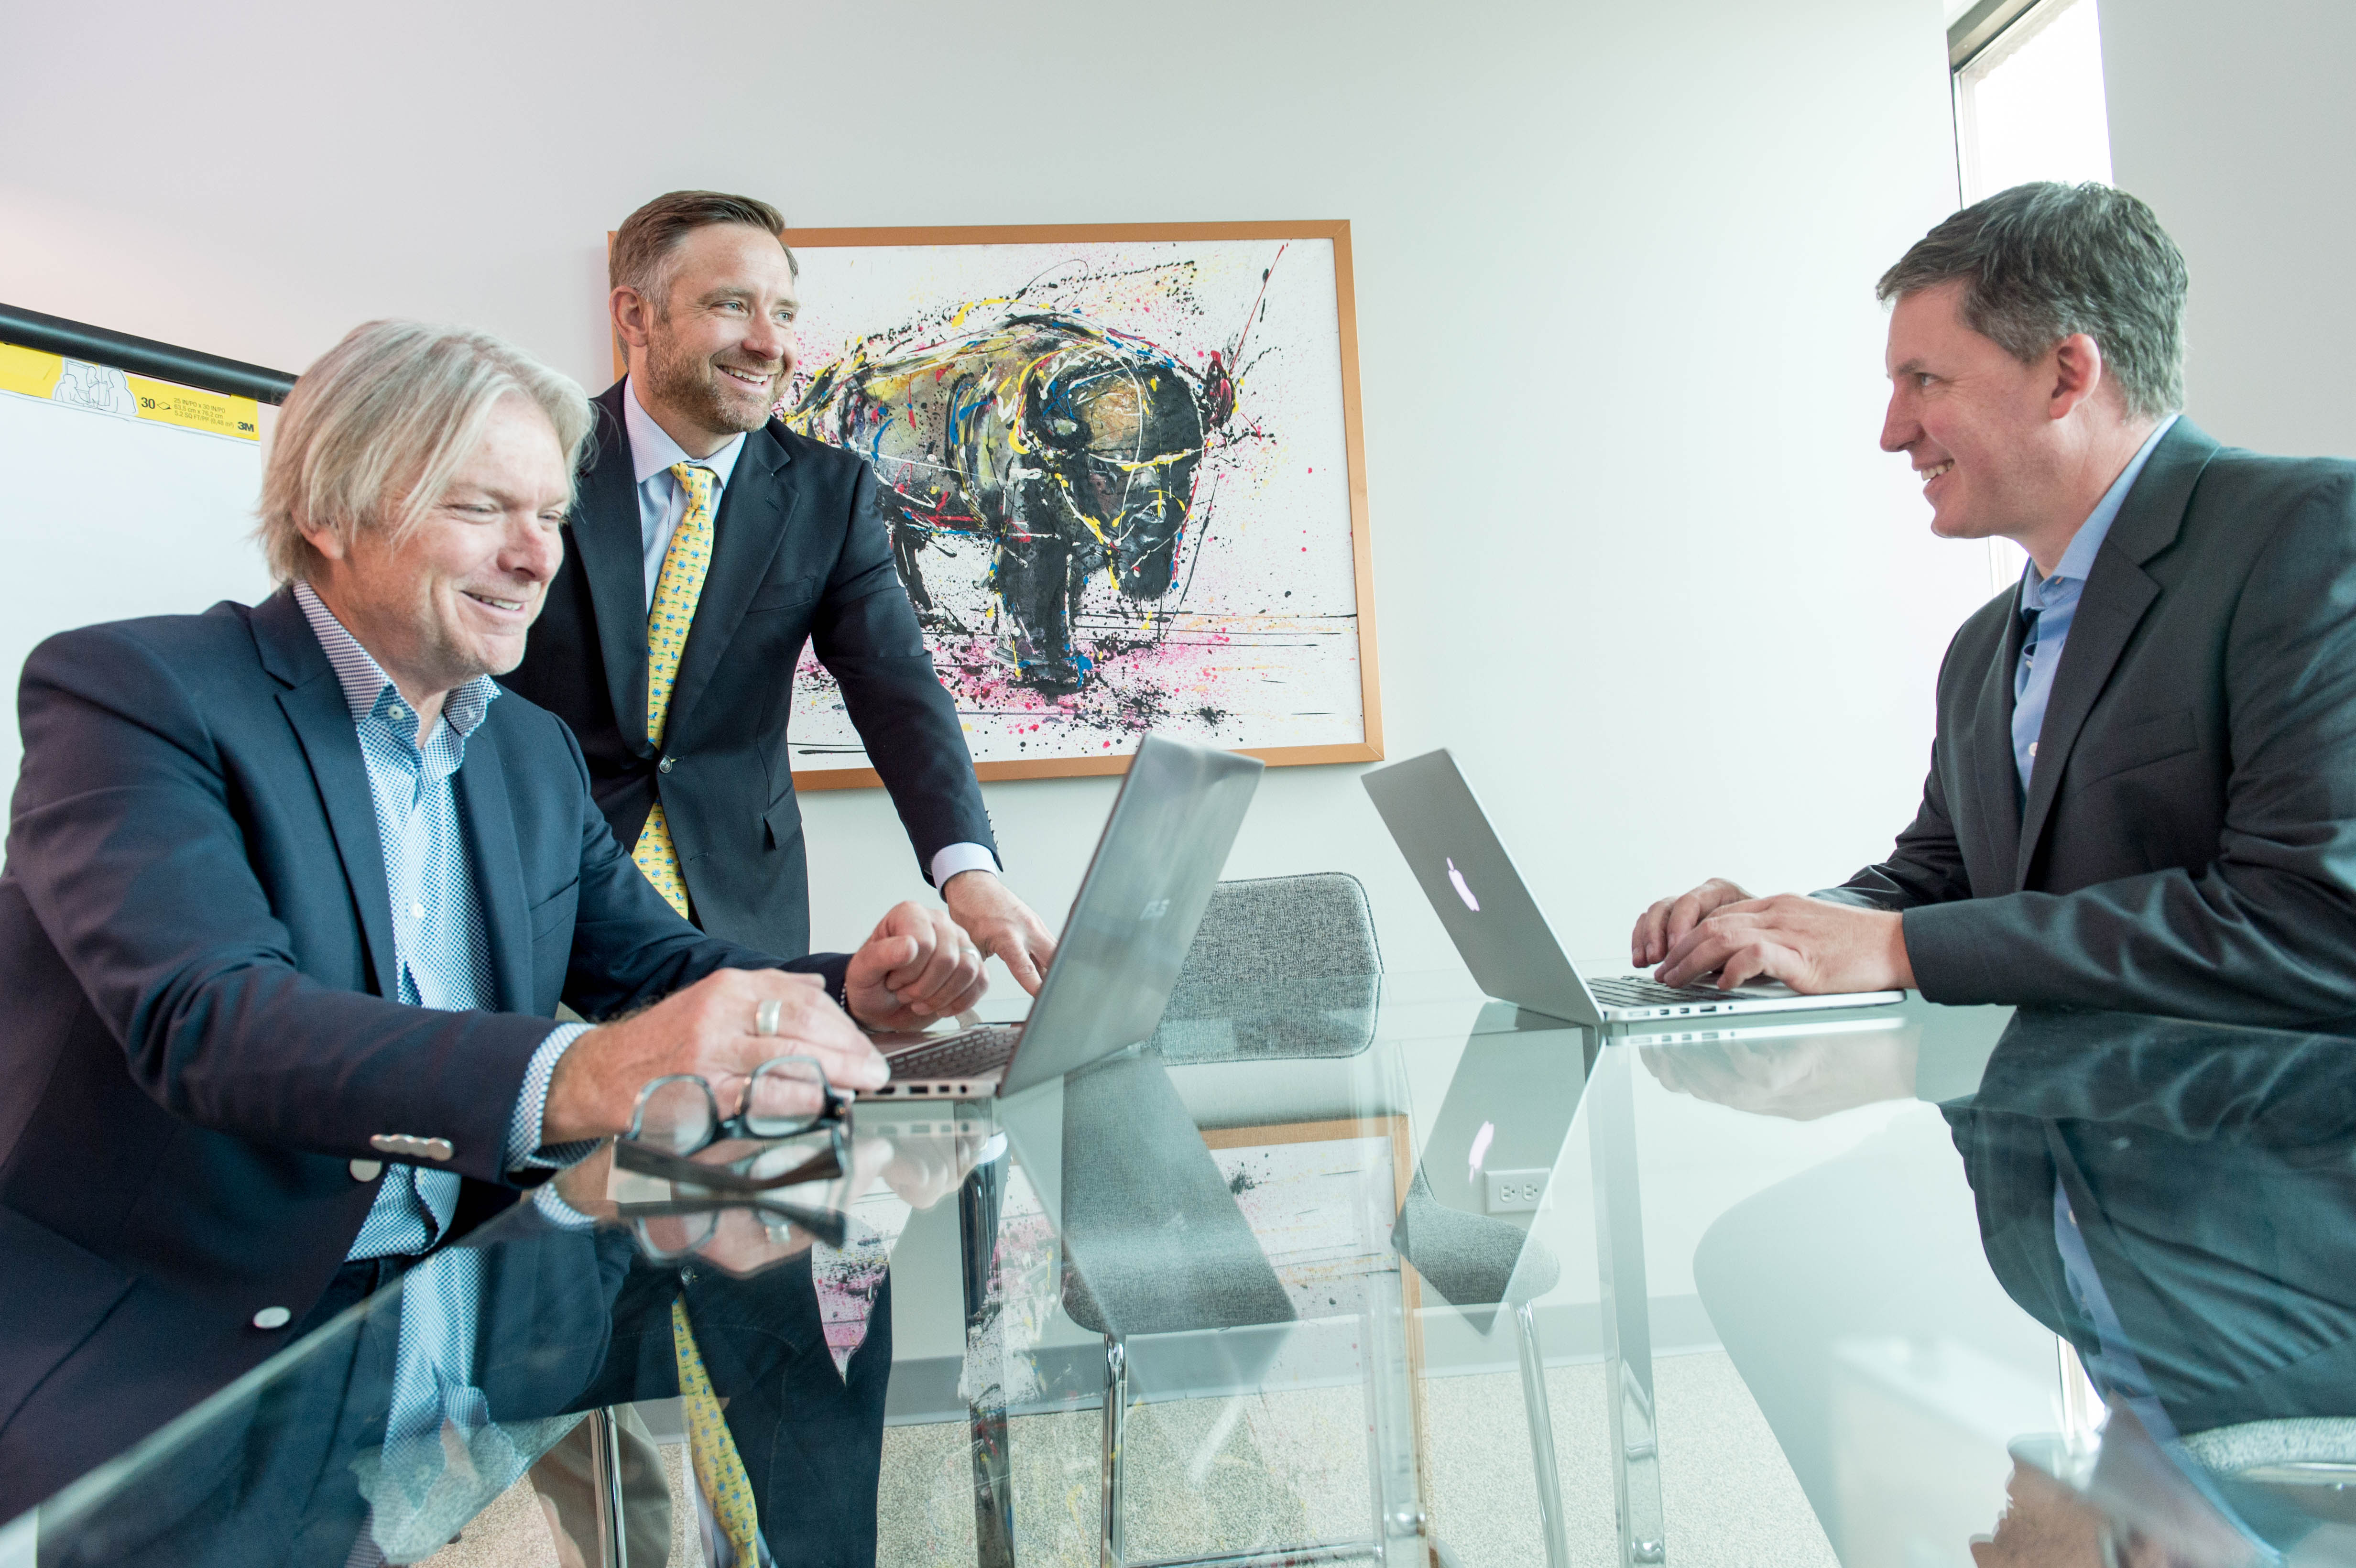 Join Our Team - Commercial Brokerage Team Smiling and Working at a Table